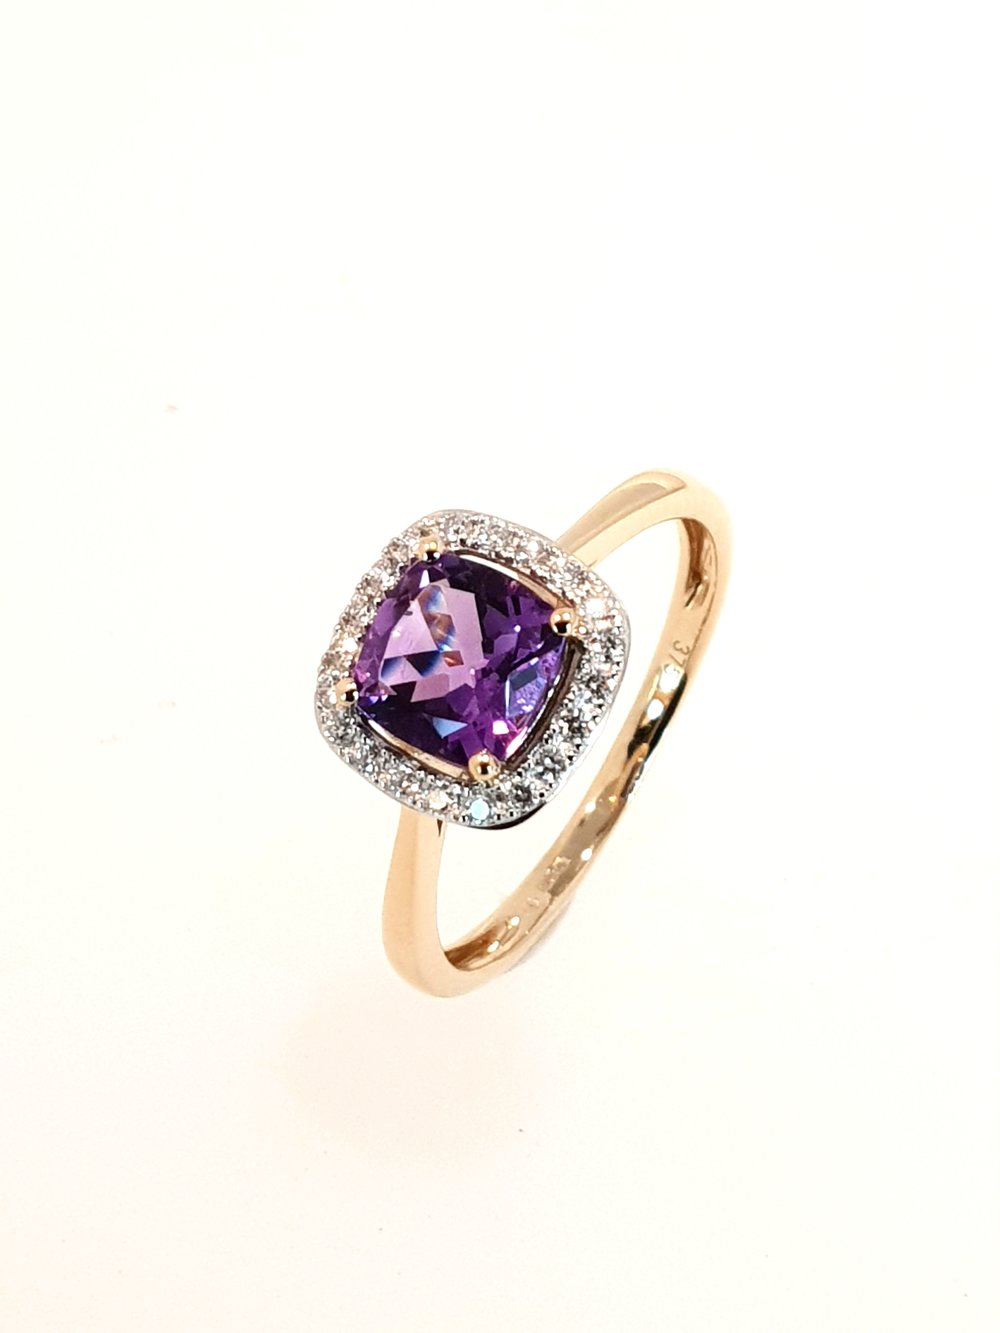 9ct Yellow Gold Amethyst(.95ct) & Diamond(.12ct) Ring  Stock Code: G1968  £630